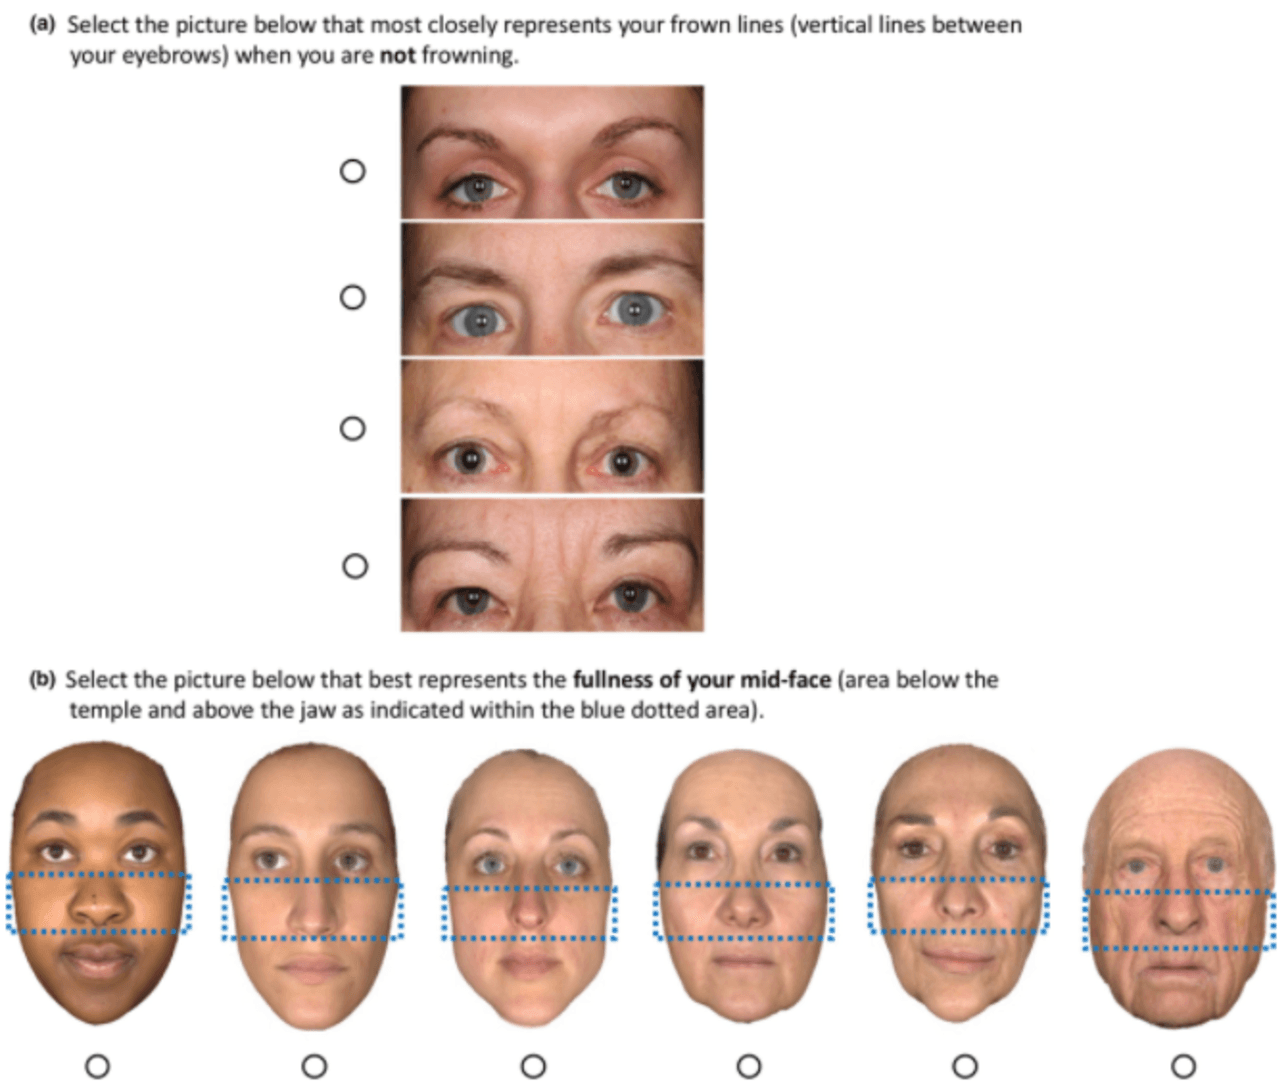 Select facial area on photo